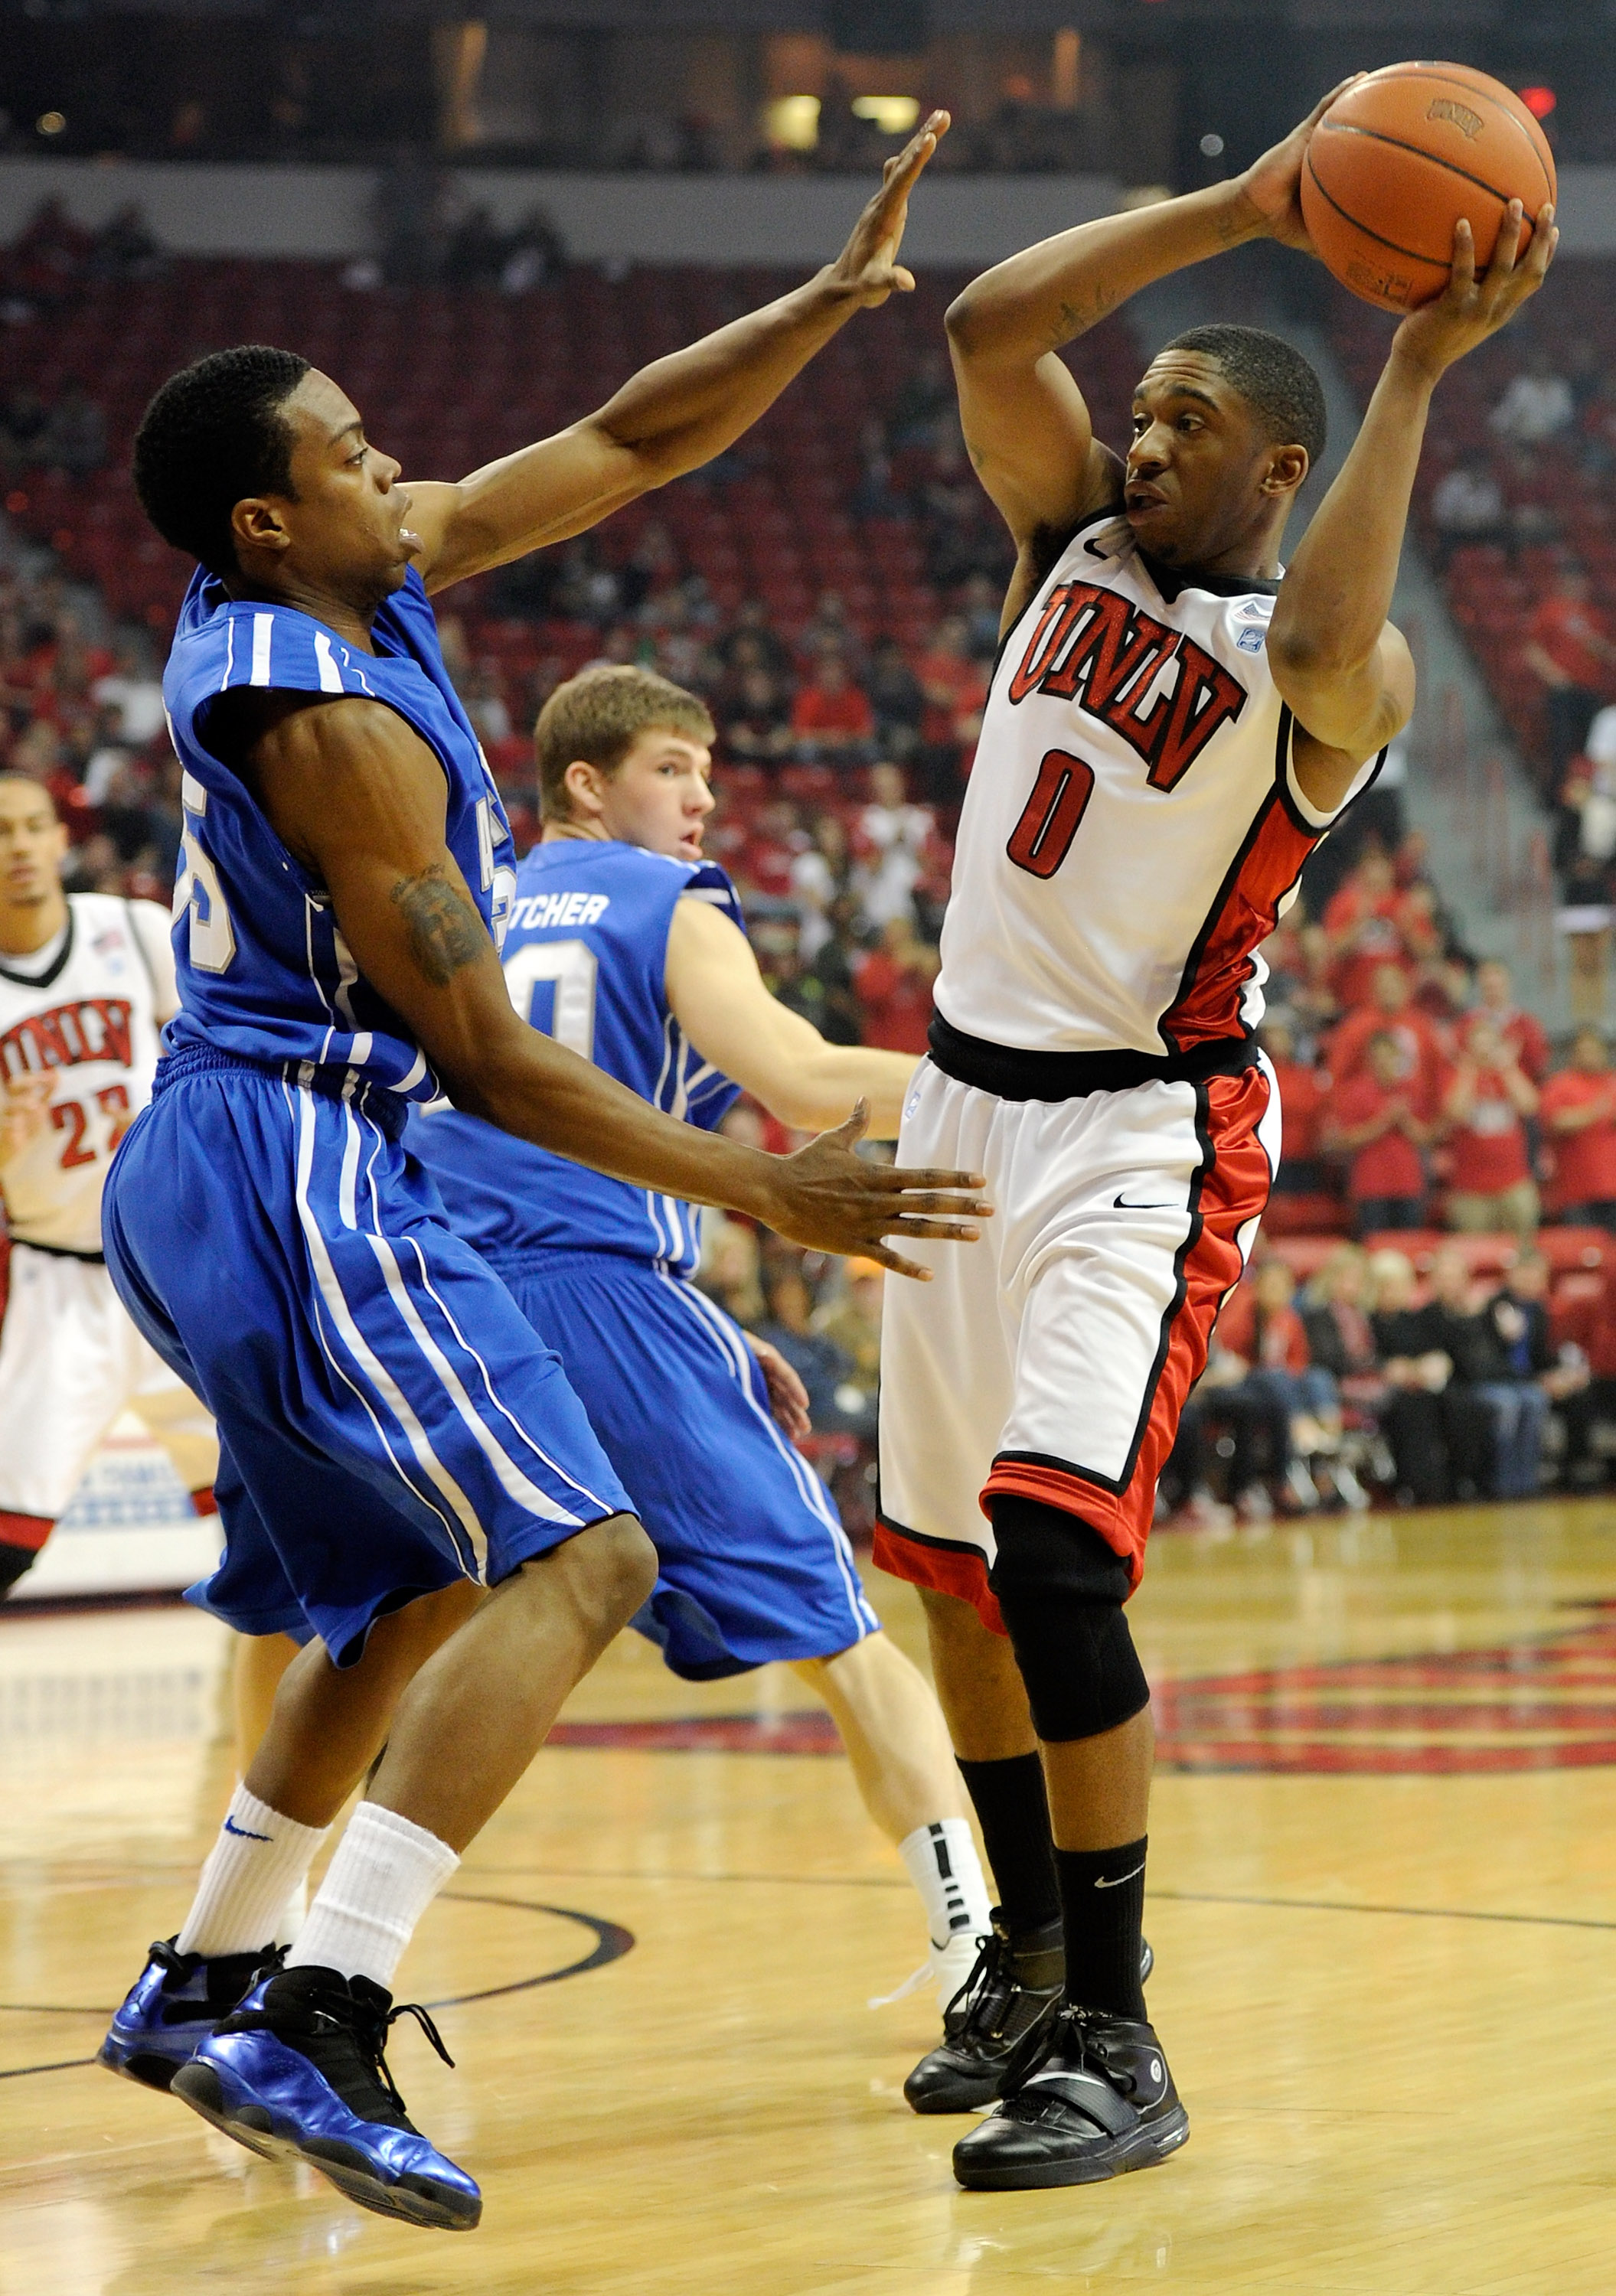 LAS VEGAS, NV - FEBRUARY 15:  Oscar Bellfield #0 of the UNLV Rebels looks to pass against Evan Washington #35 of the Air Force Falcons during their game at the Thomas & Mack Center February 15, 2011 in Las Vegas, Nevada. UNLV won 49-42.  (Photo by Ethan M